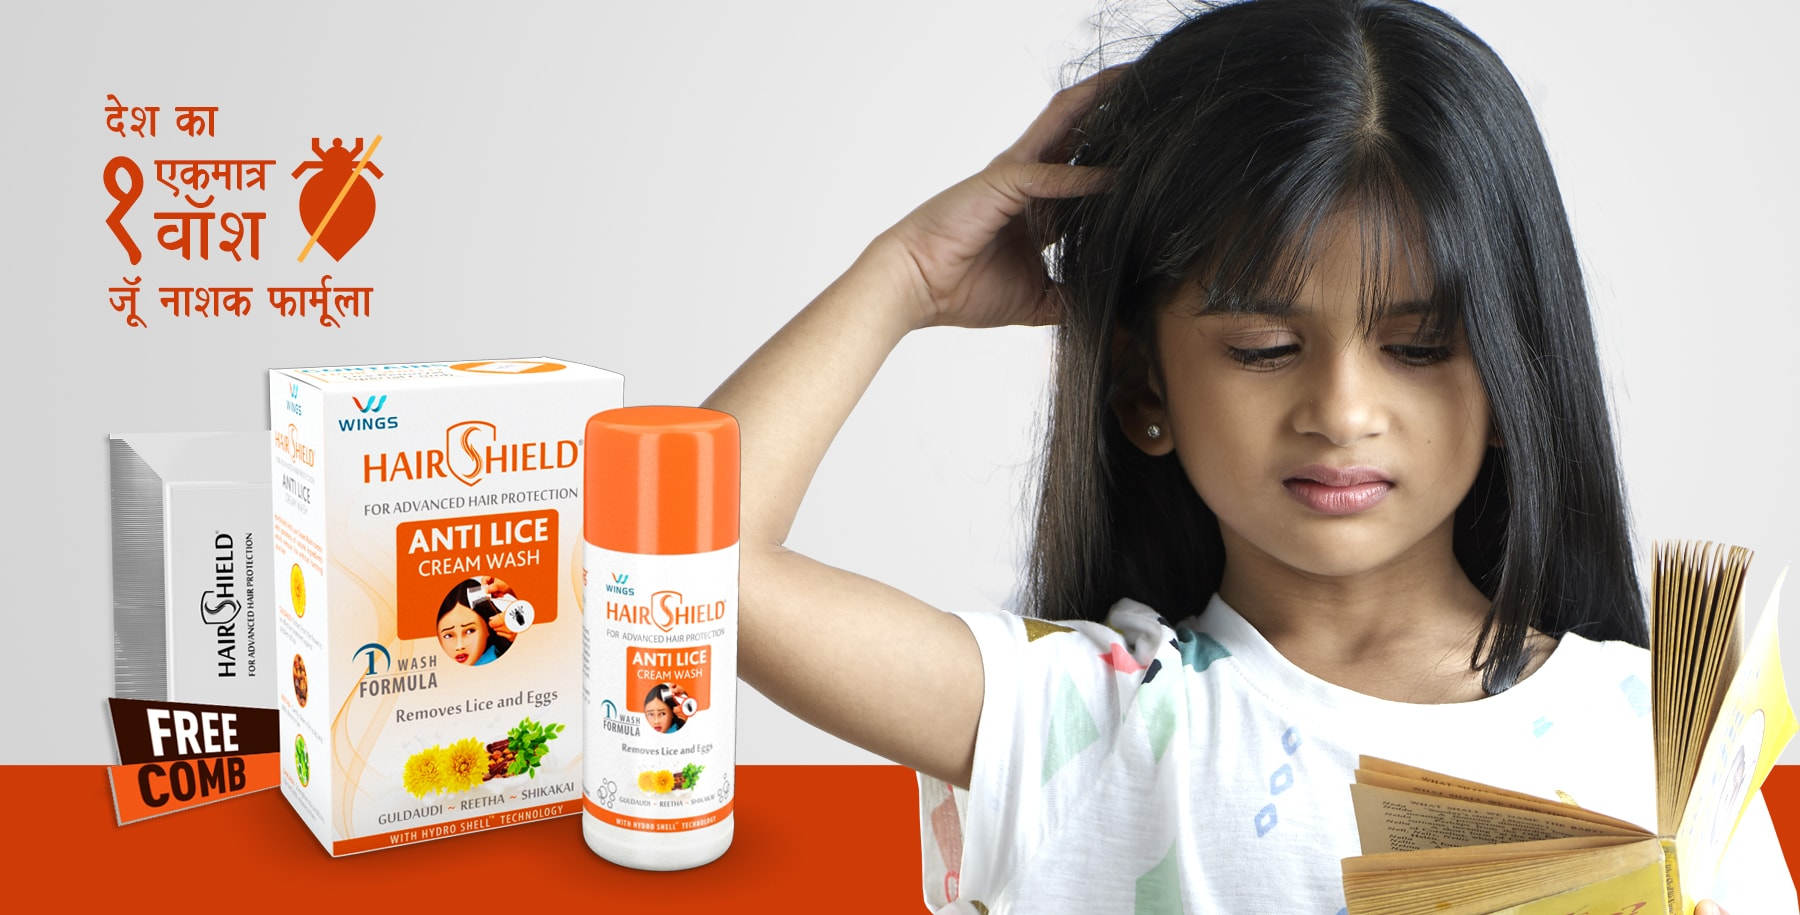 Hairshield India's 1 only wash anti-lice formula | Kills Lice and Eggs In One Go